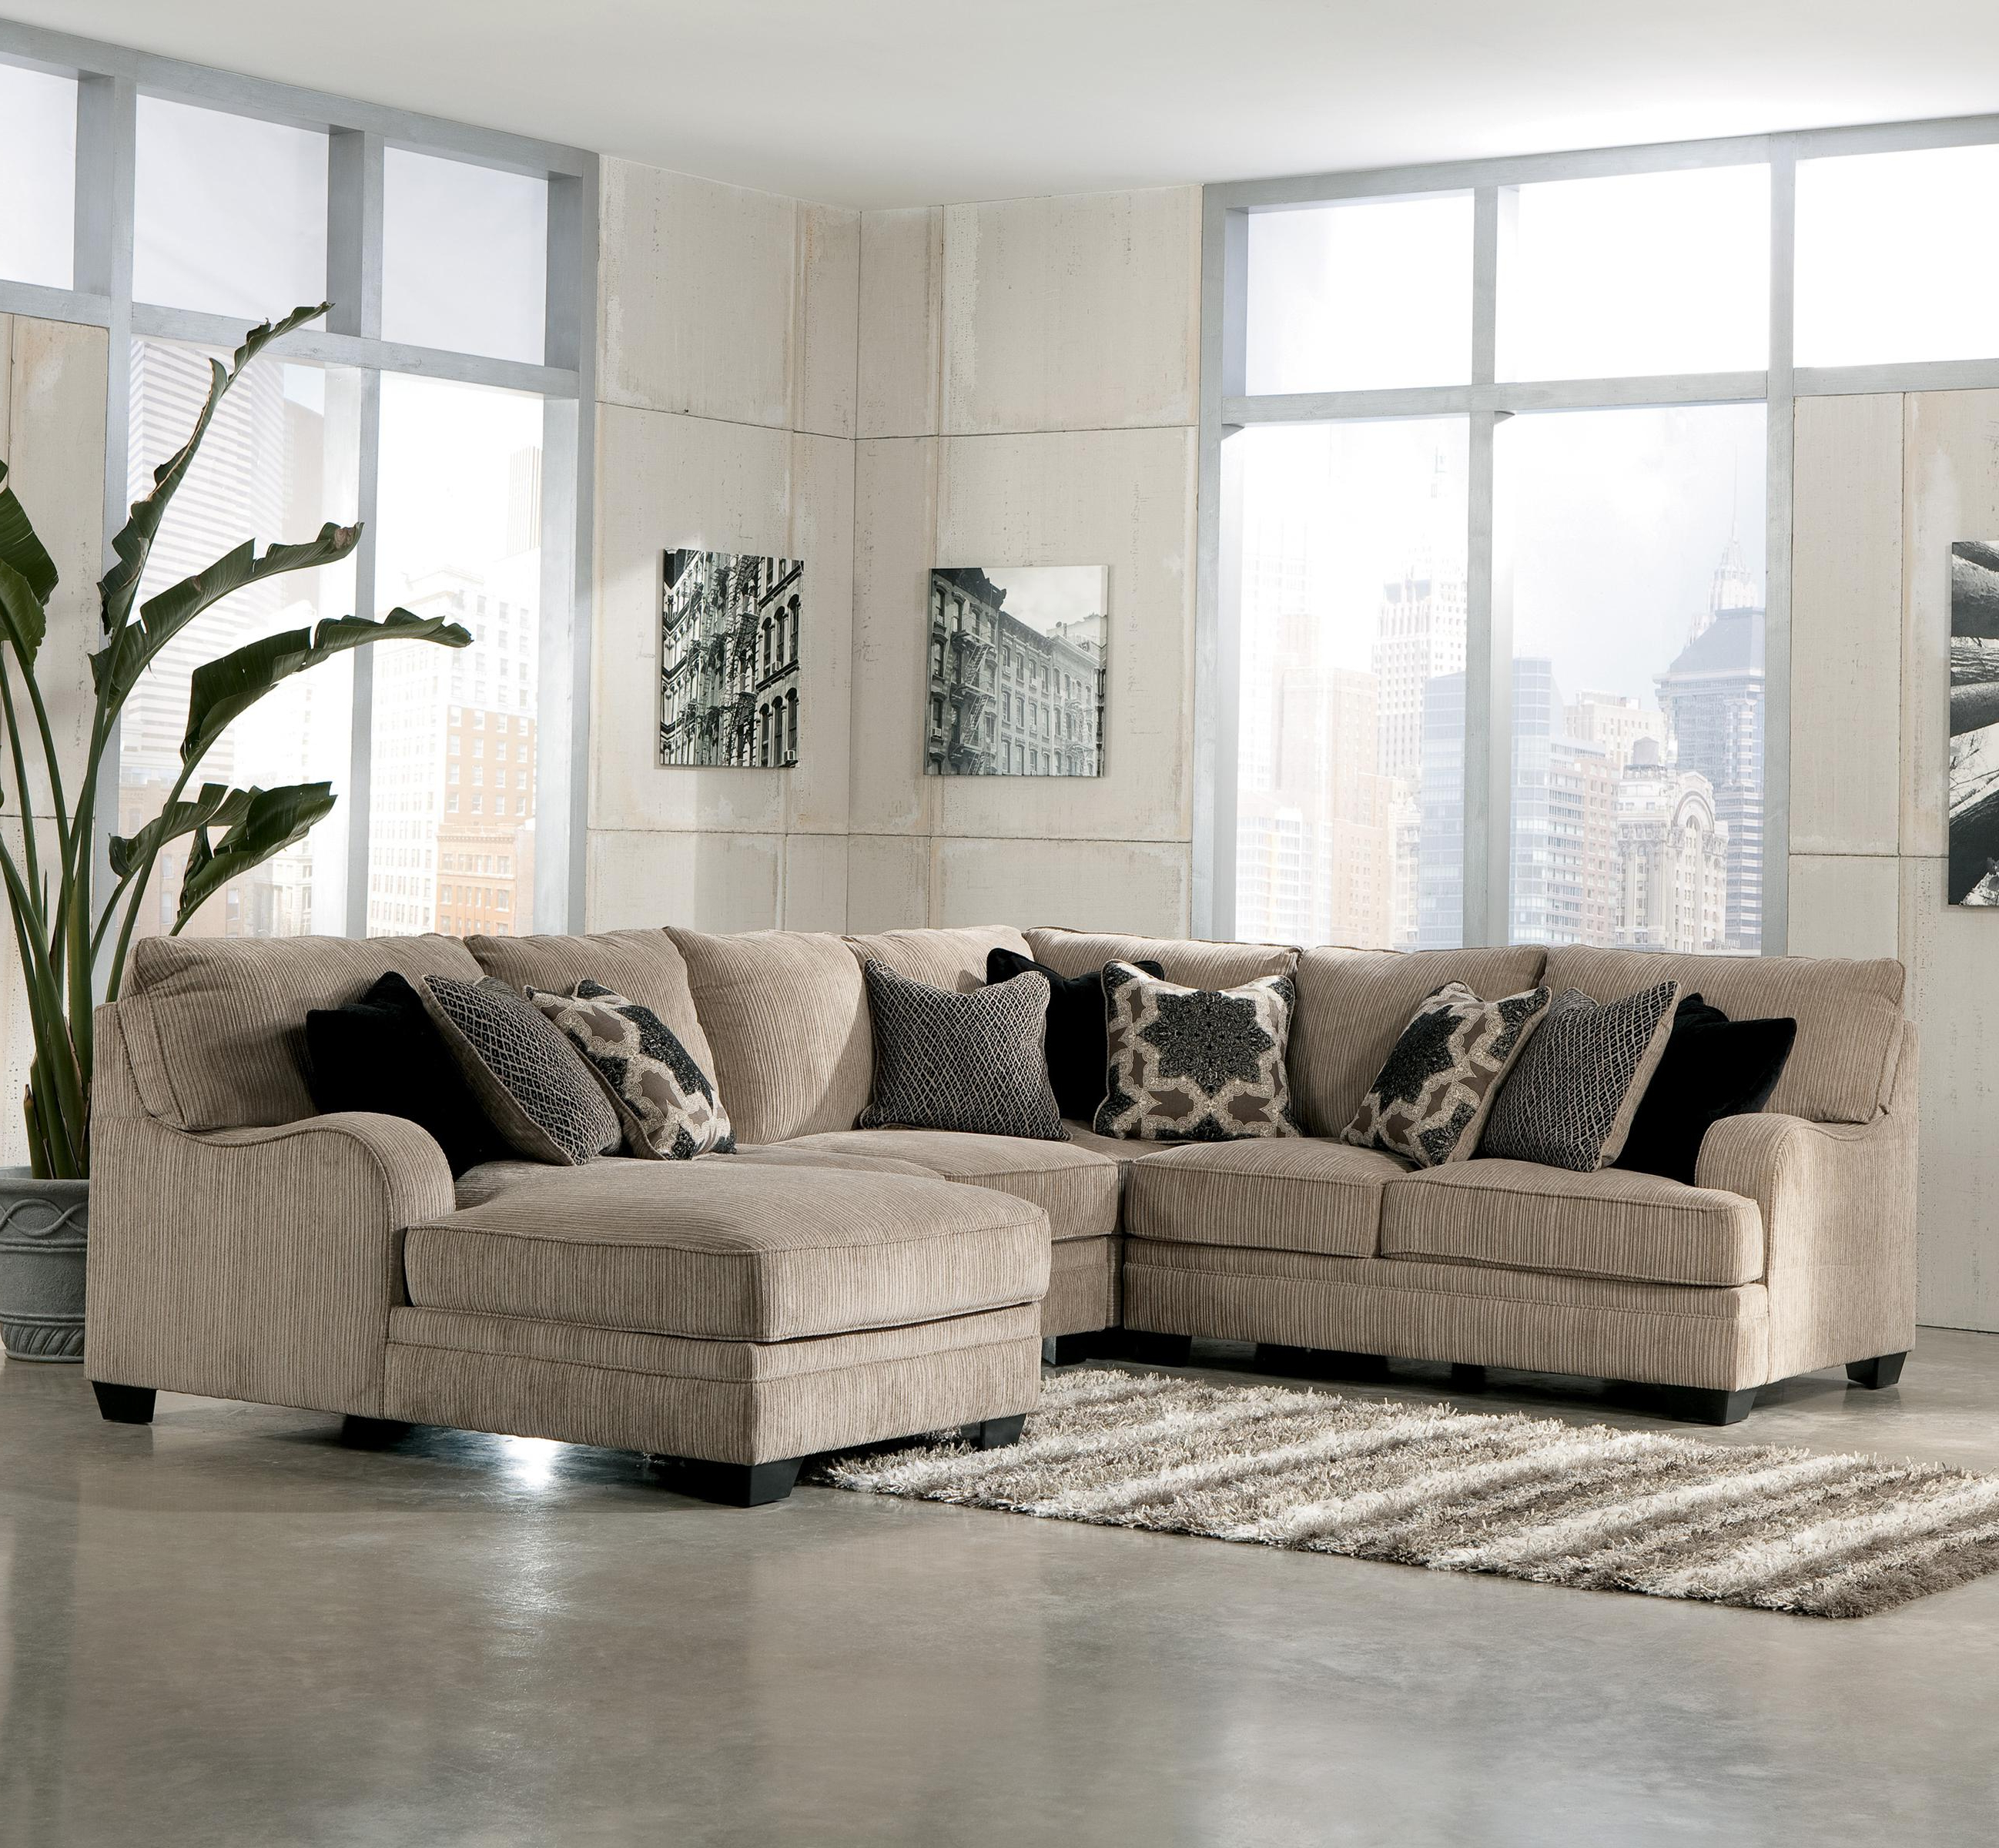 Gordon 3 Piece Sectionals With Raf Chaise With Regard To Famous Signature Designashley Katisha – Platinum 4 Piece Sectional Sofa (View 20 of 20)